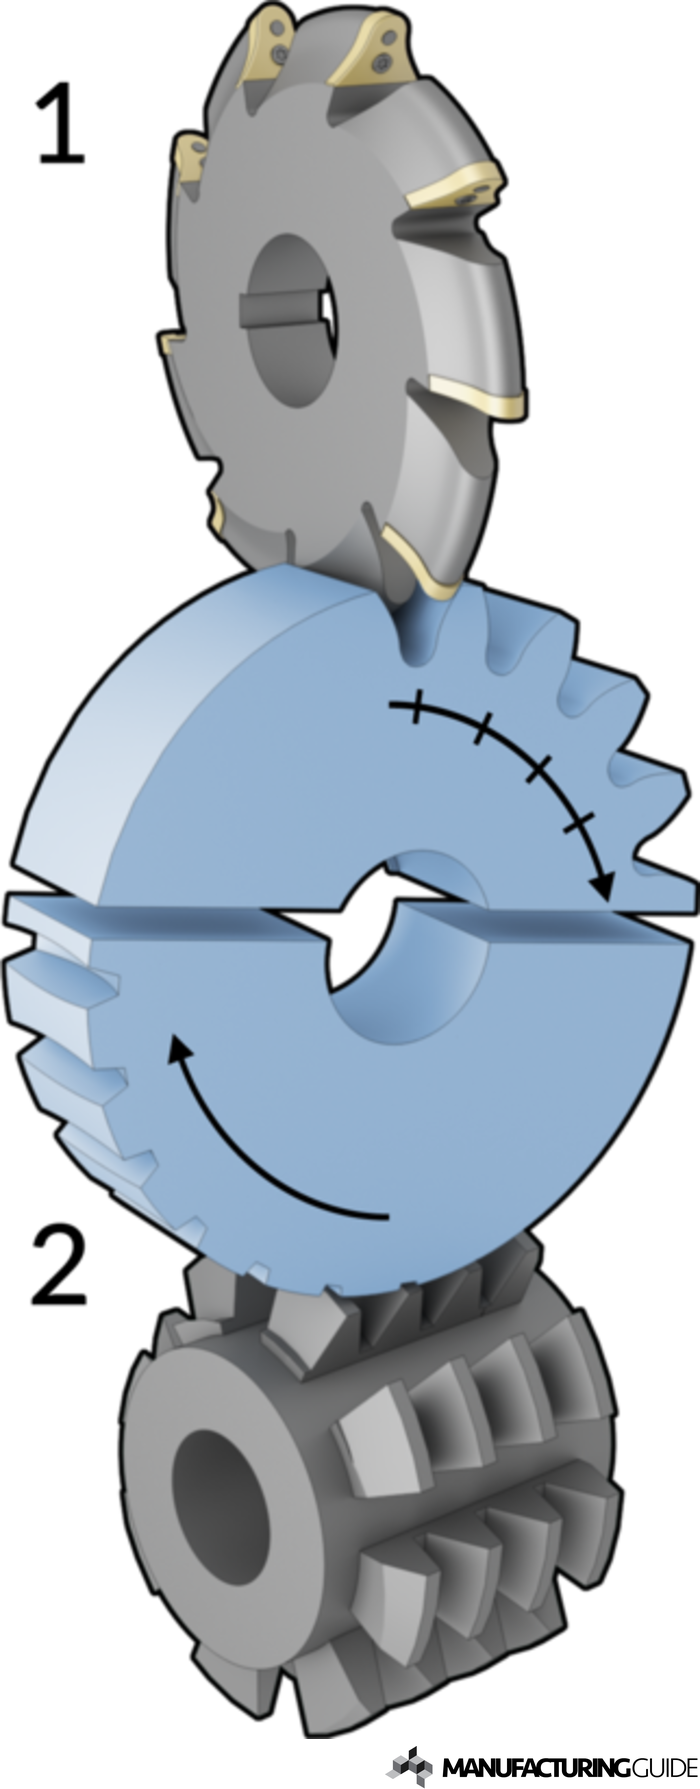 Illustration of Gear milling